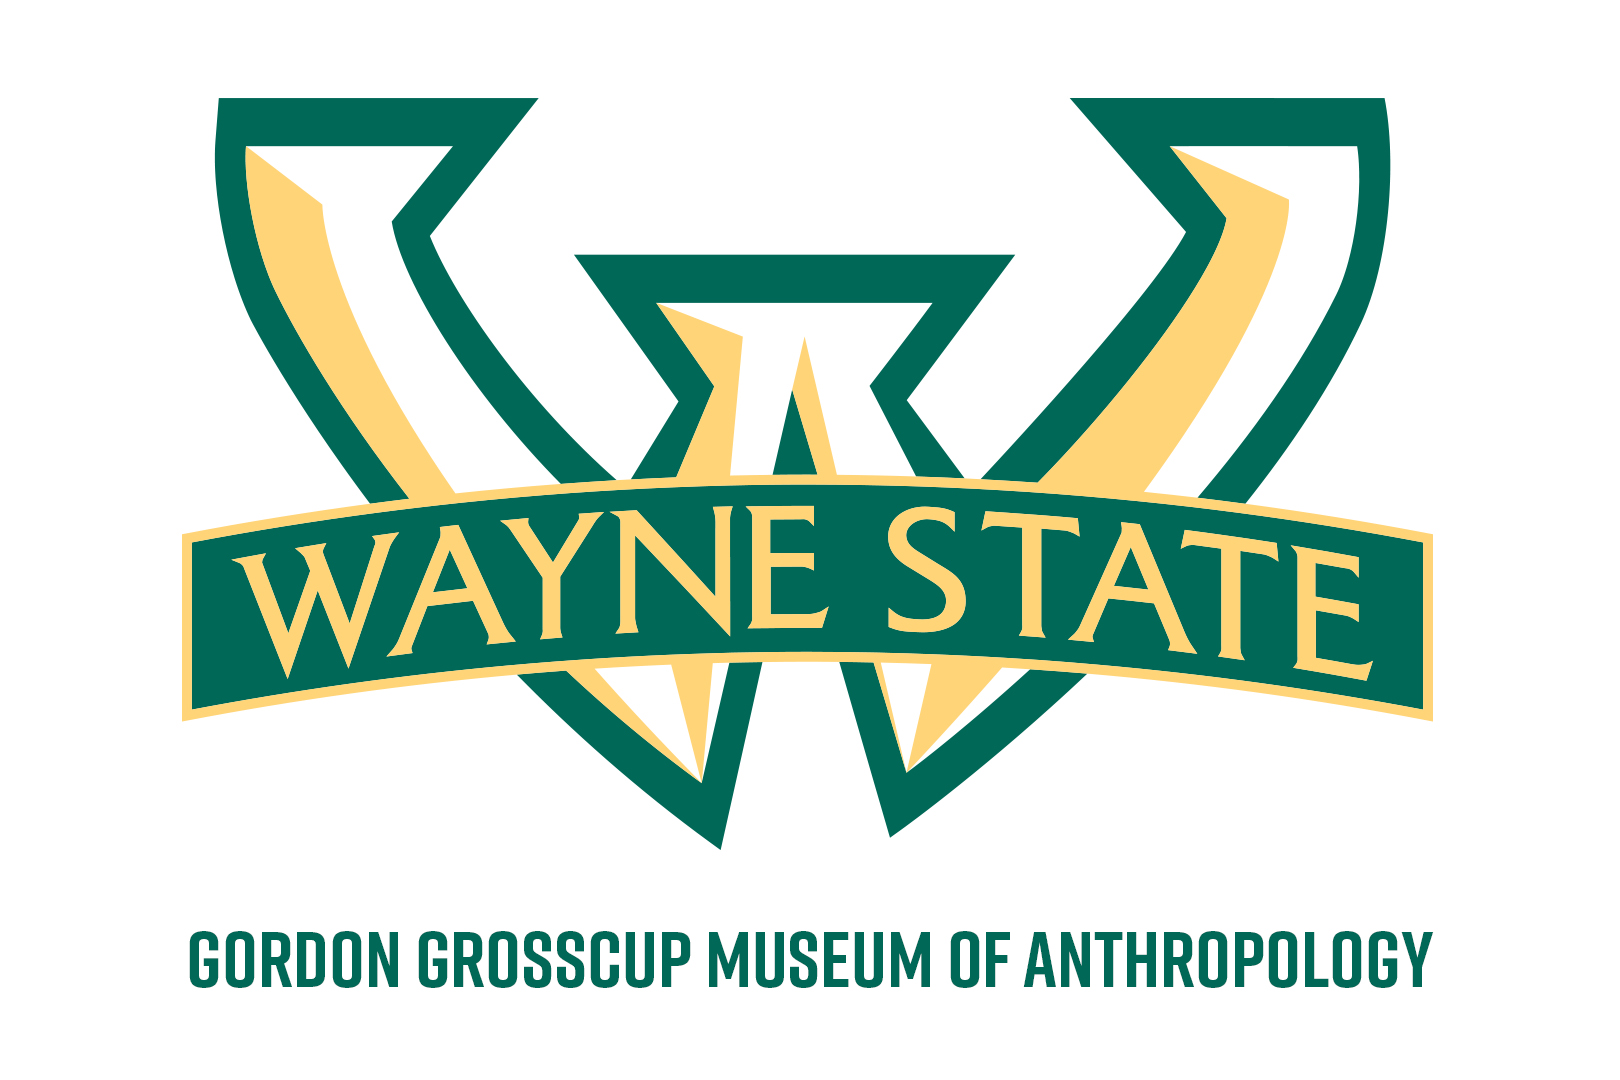 Wayne State University Gordon Grosscup Museum of Anthropology